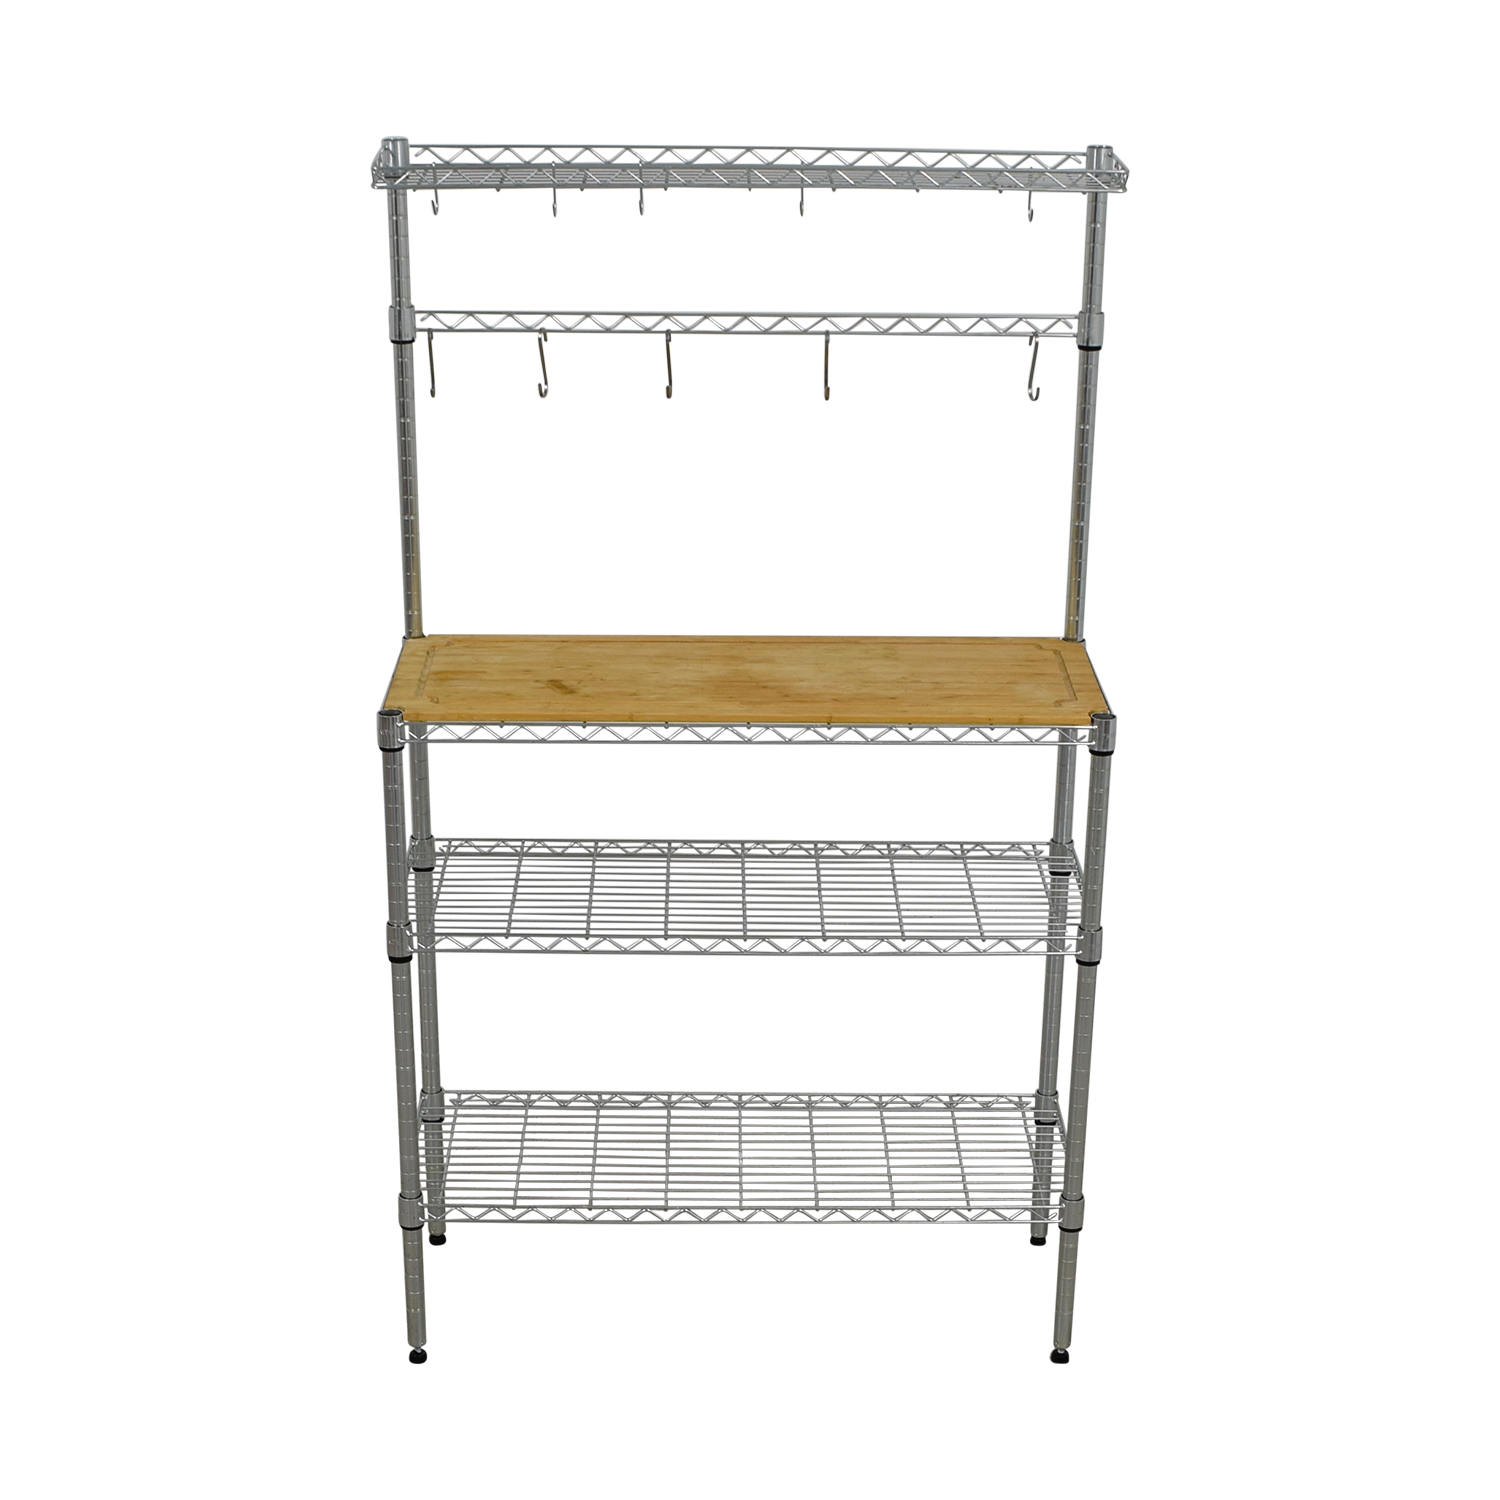 Metal and Wood Kitchen Rack sale